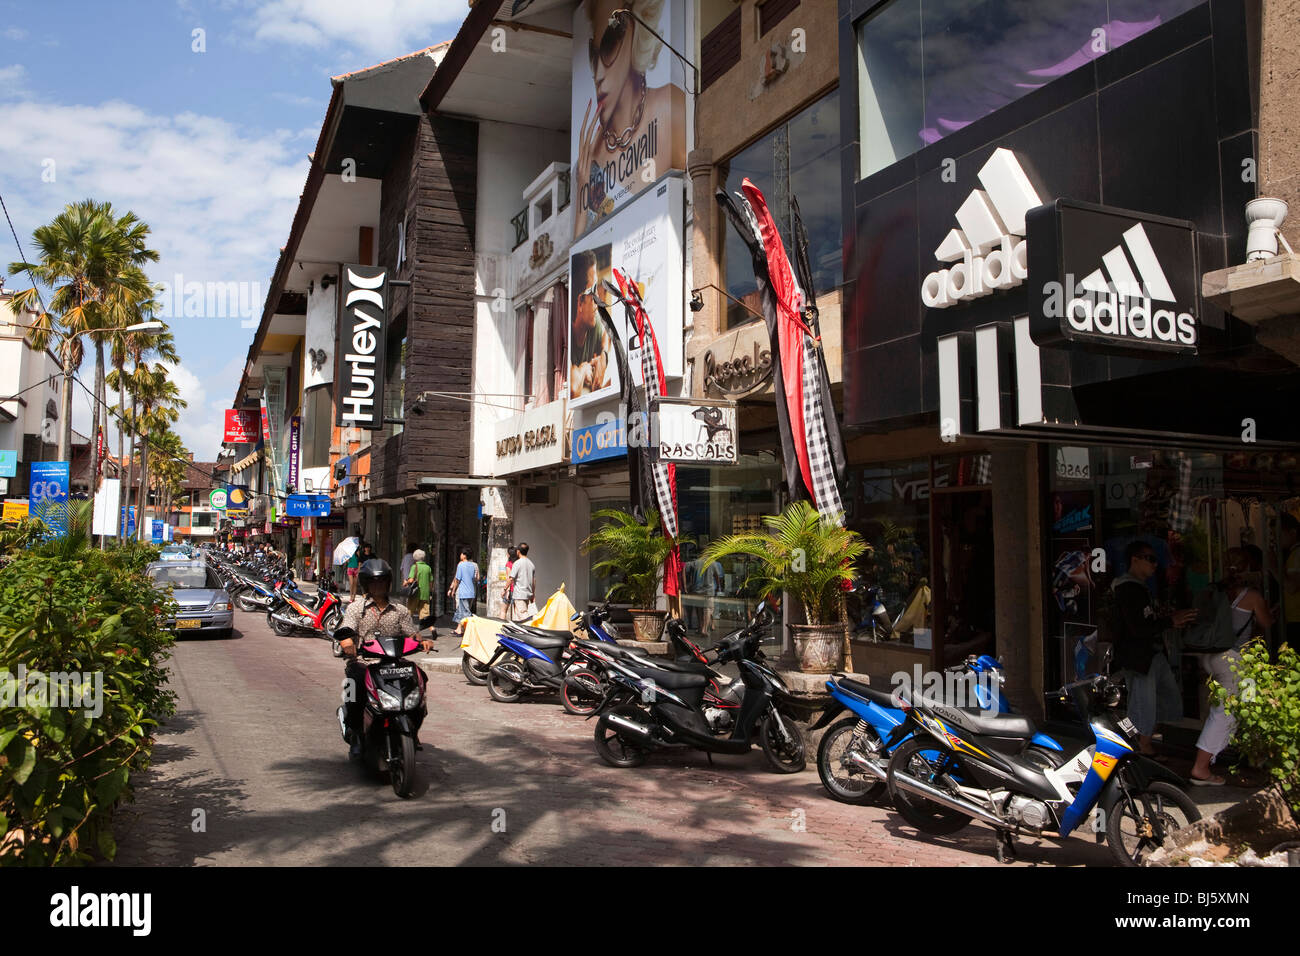 adidas factory outlet bali